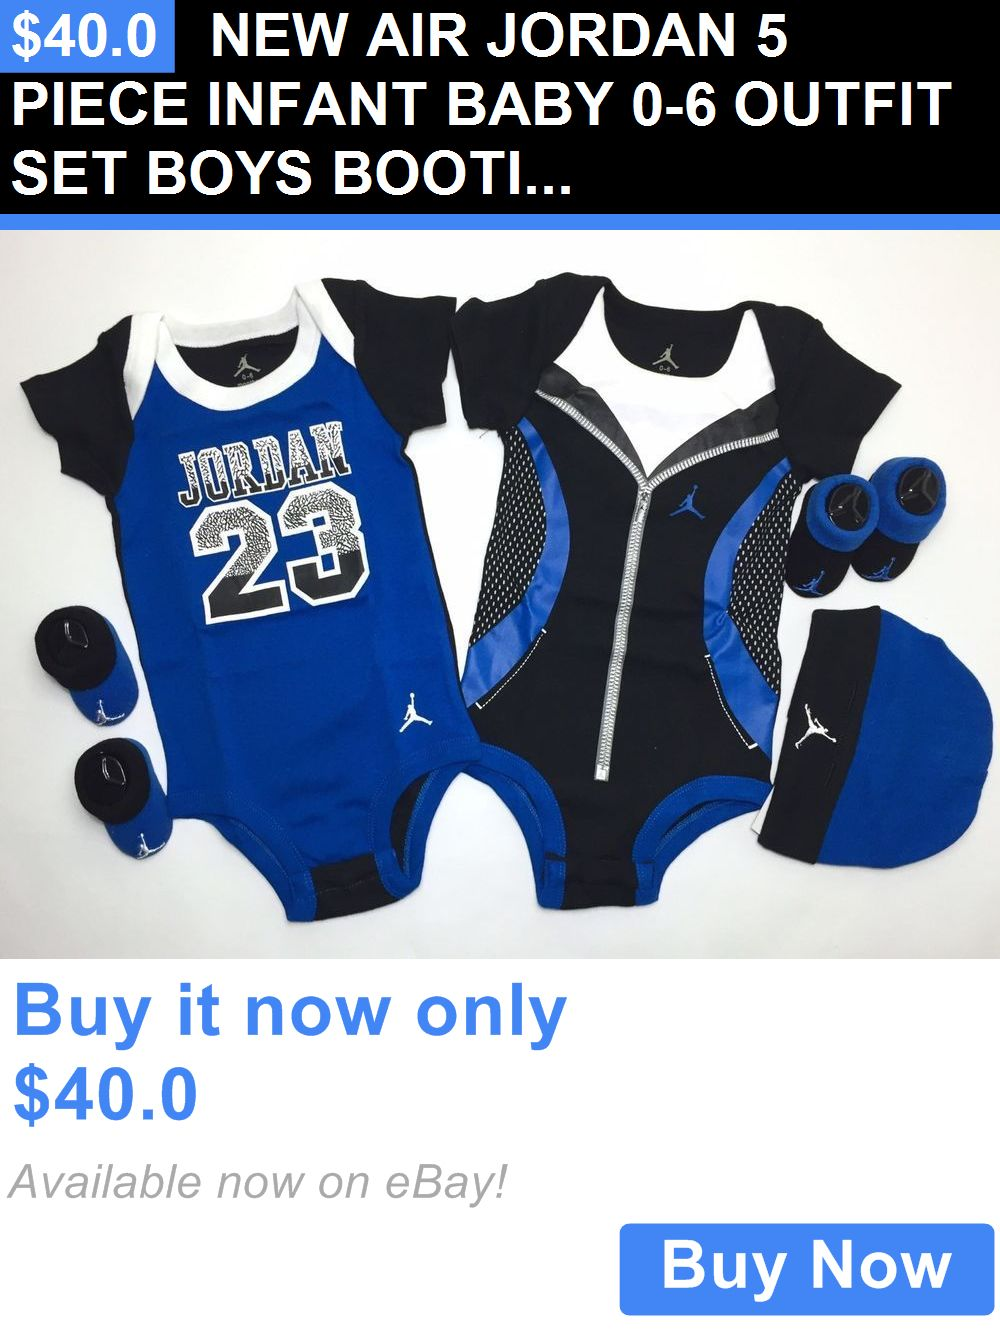 7242e084f0a3 Baby Boys Clothing And Accessories: New Air Jordan 5 Piece Infant Baby 0-6 Outfit  Set Boys Booties Bodysuits Cap BUY IT NOW ONLY: $40.0